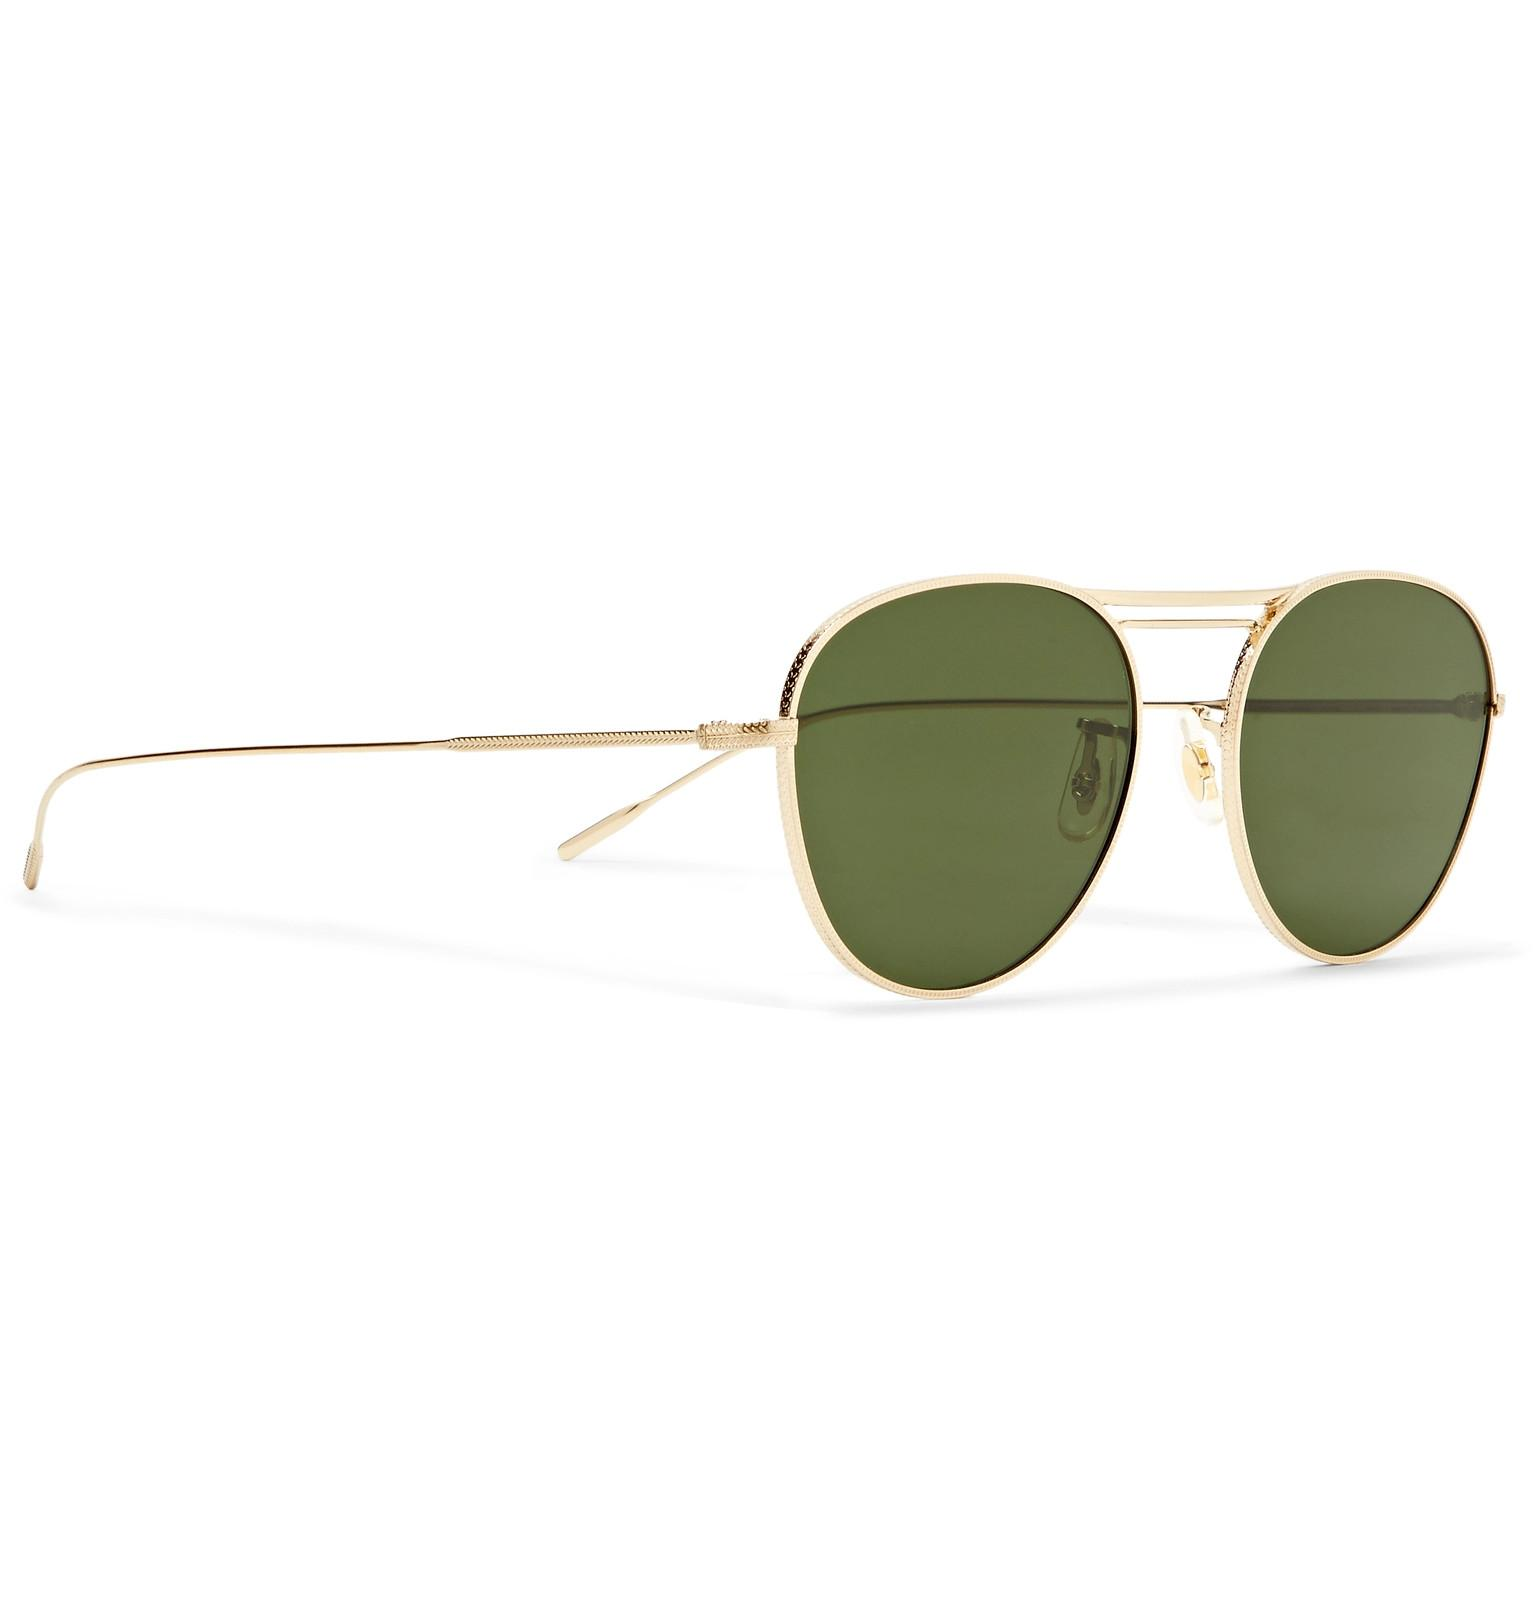 Oliver Peoples Cade Aviator-style Gold-tone Sunglasses in Metallic for Men